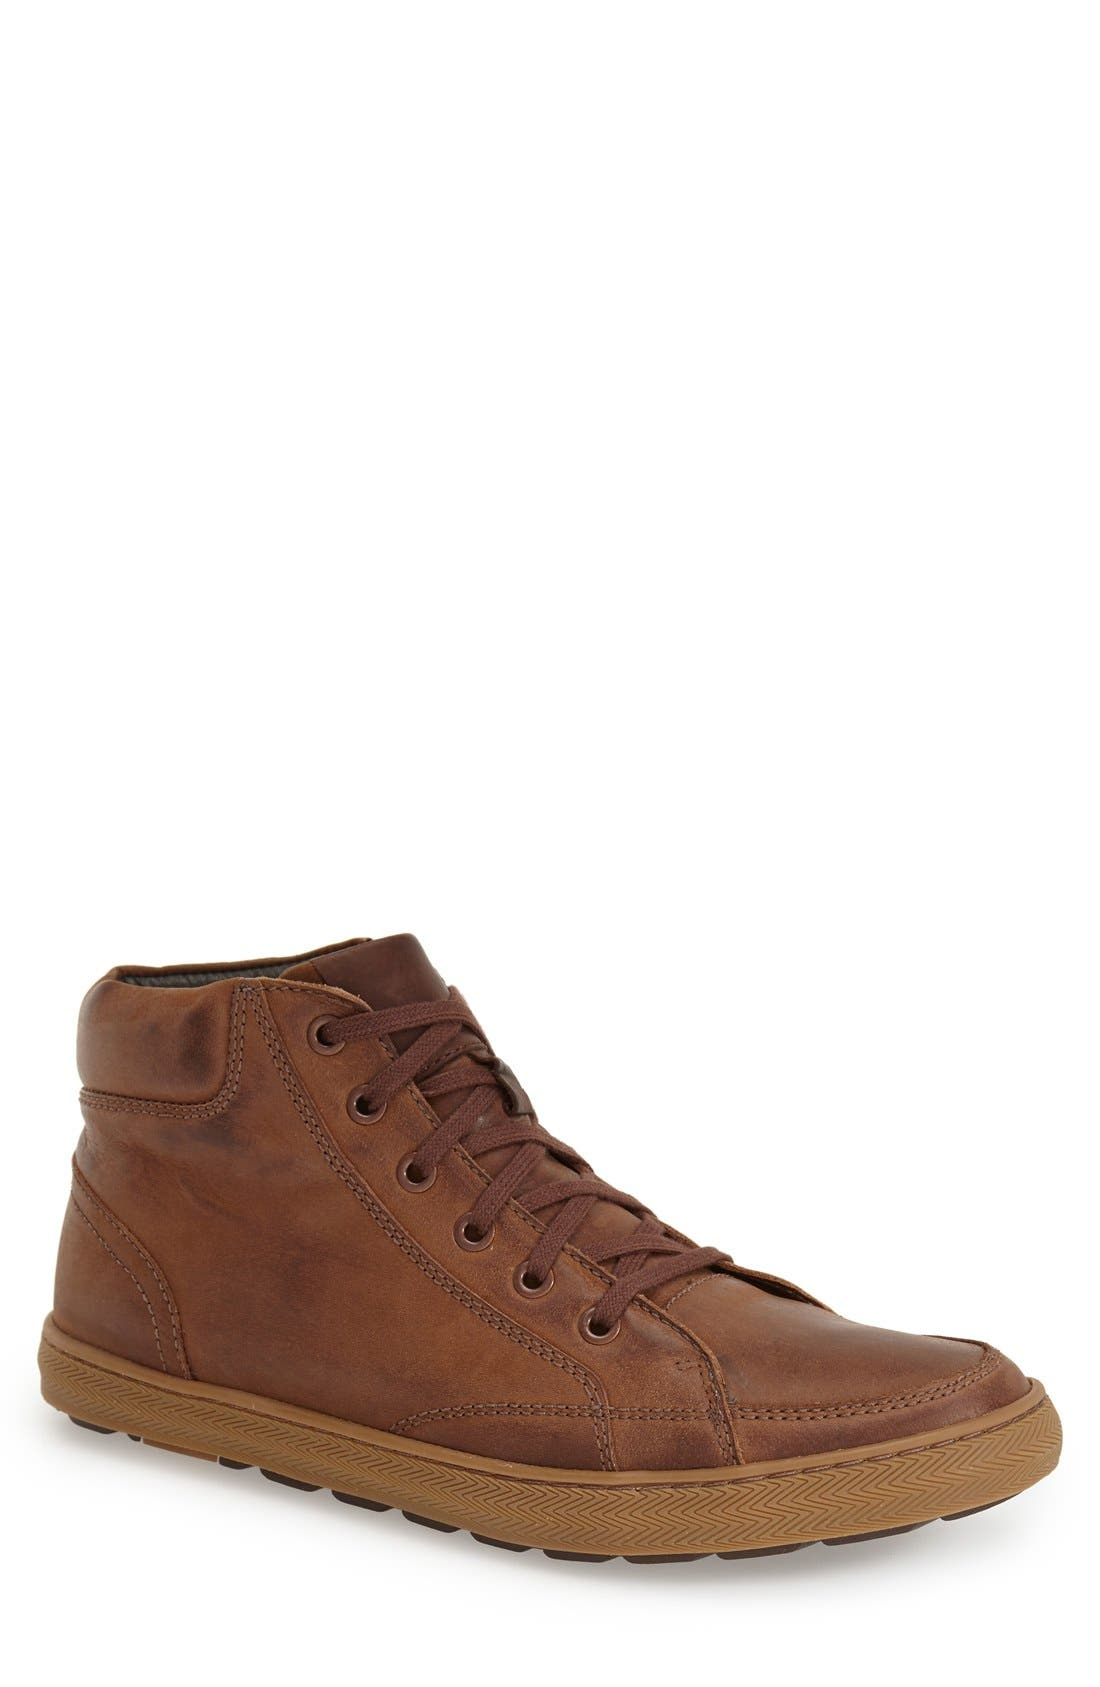 ANATOMIC & CO Santos Sneaker